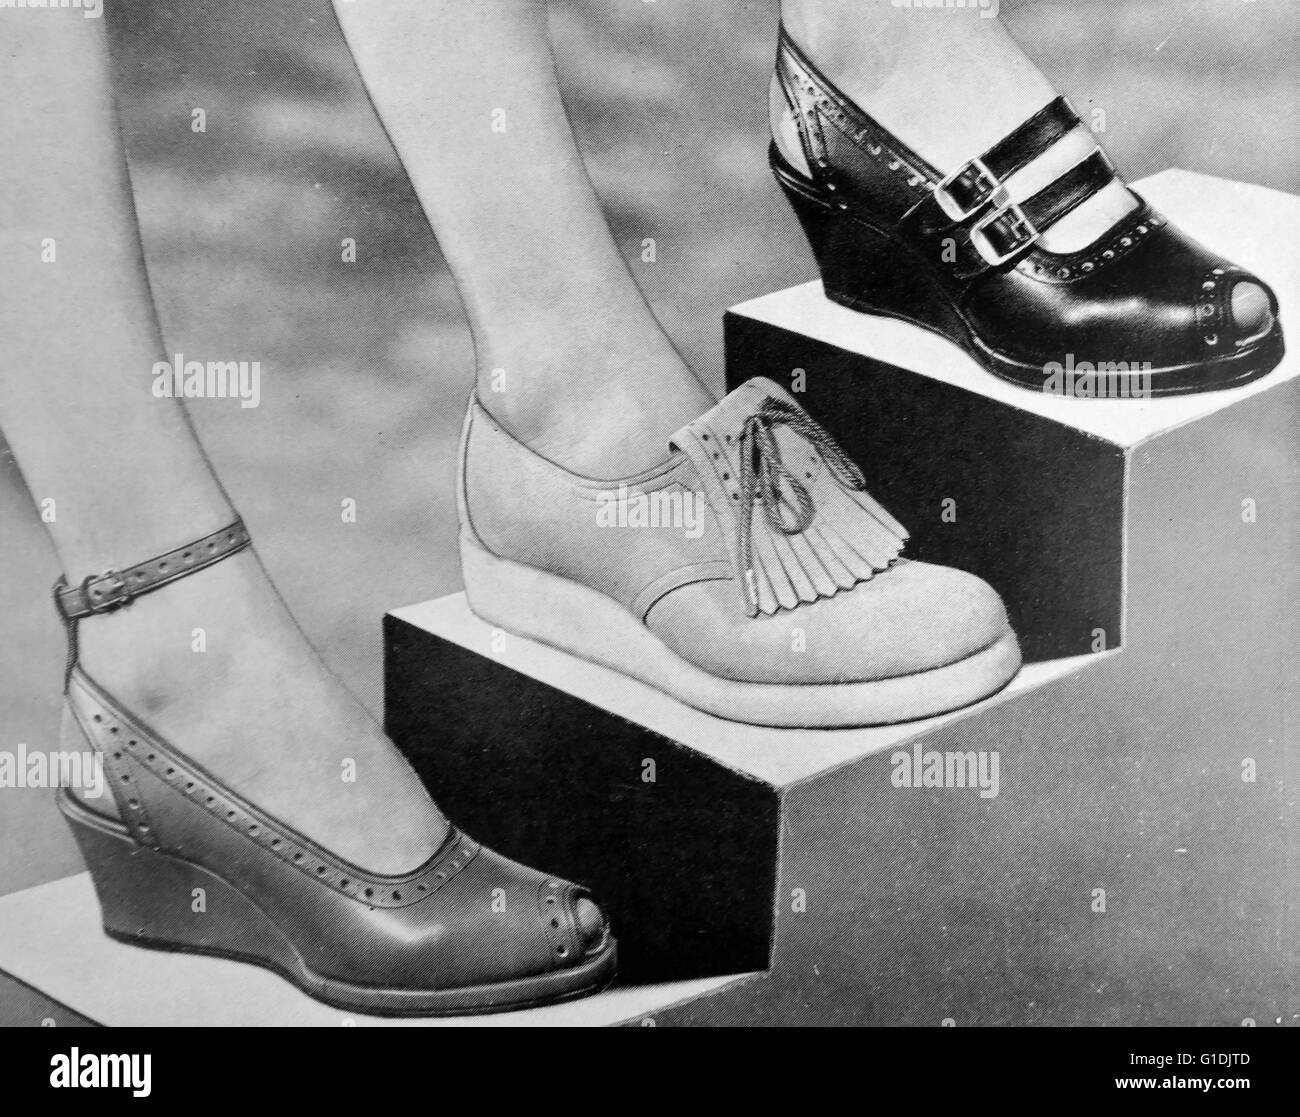 3 styles of women's shoes by 'Joyce' c1955, British shoes introduced at the end of post war rationing, - Stock Image